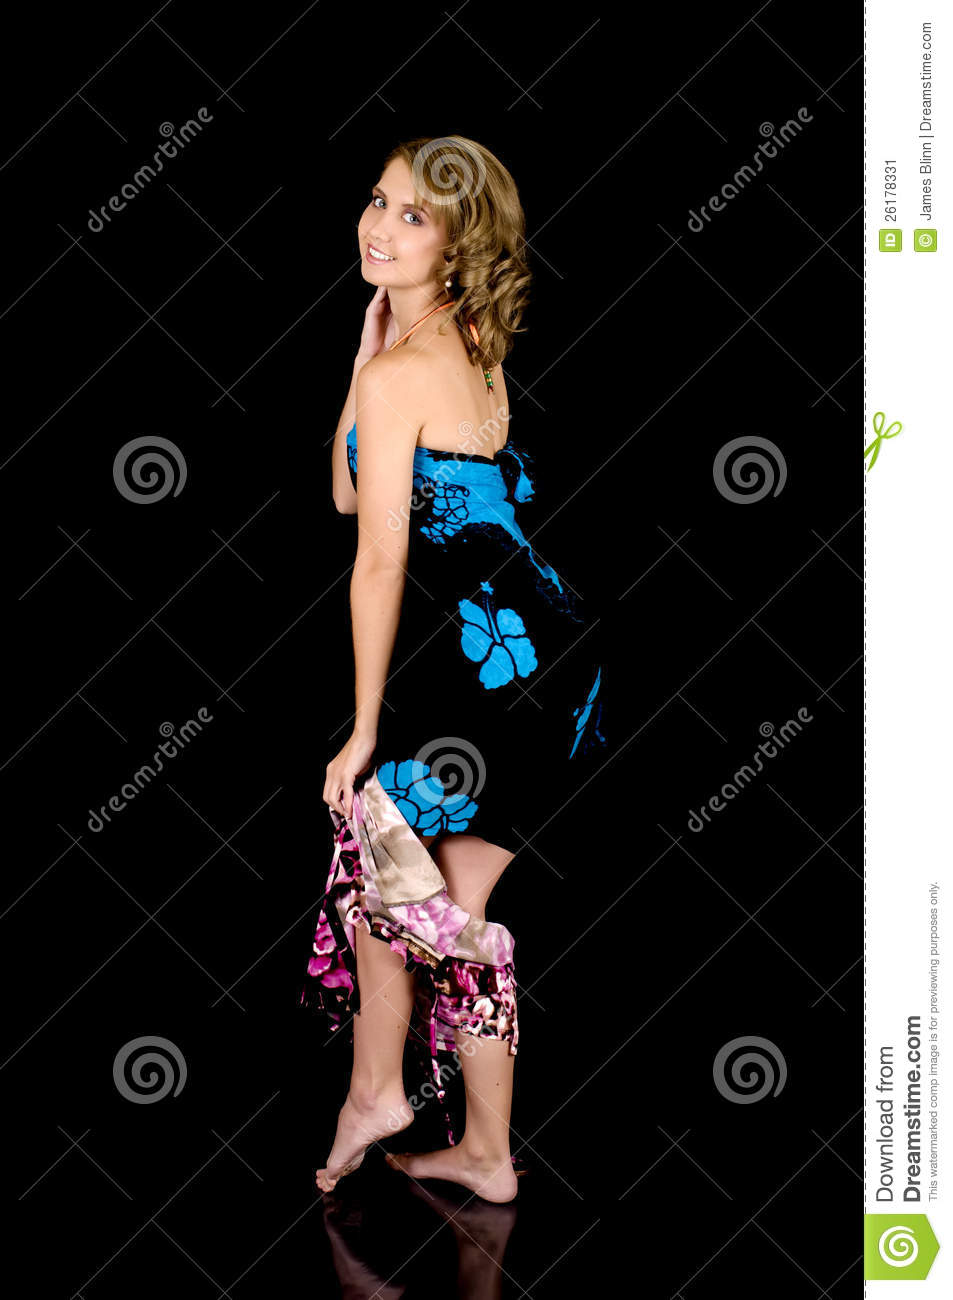 Cute Girl Removing Her Dress Stock Image Image 26178331